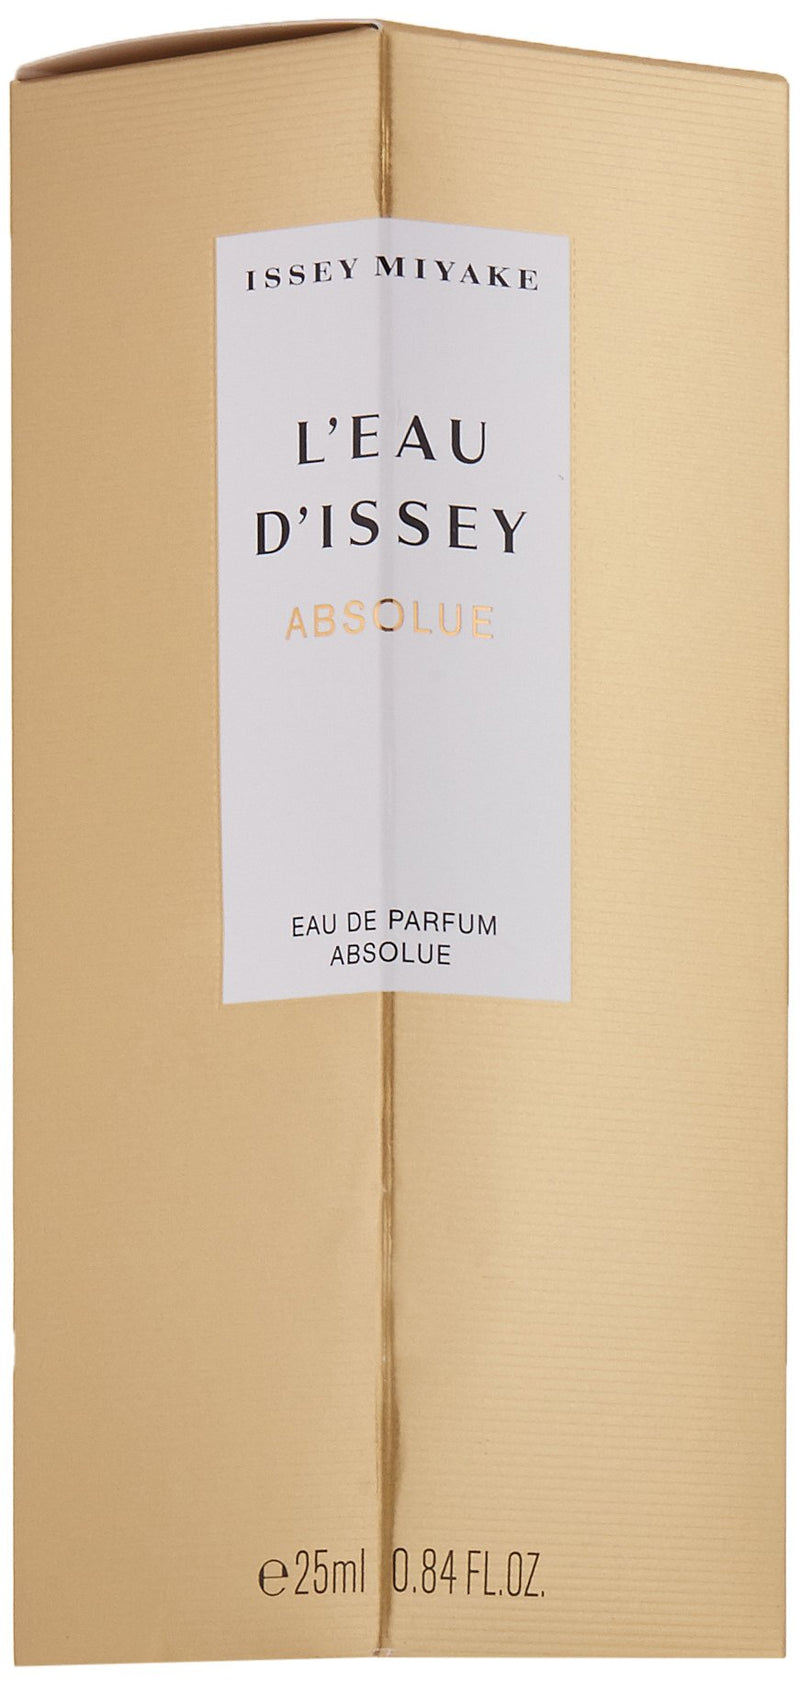 L'Eau D'Issey Absolue by ISSEY MIYAKE Eau de Parfum Spray 25ml